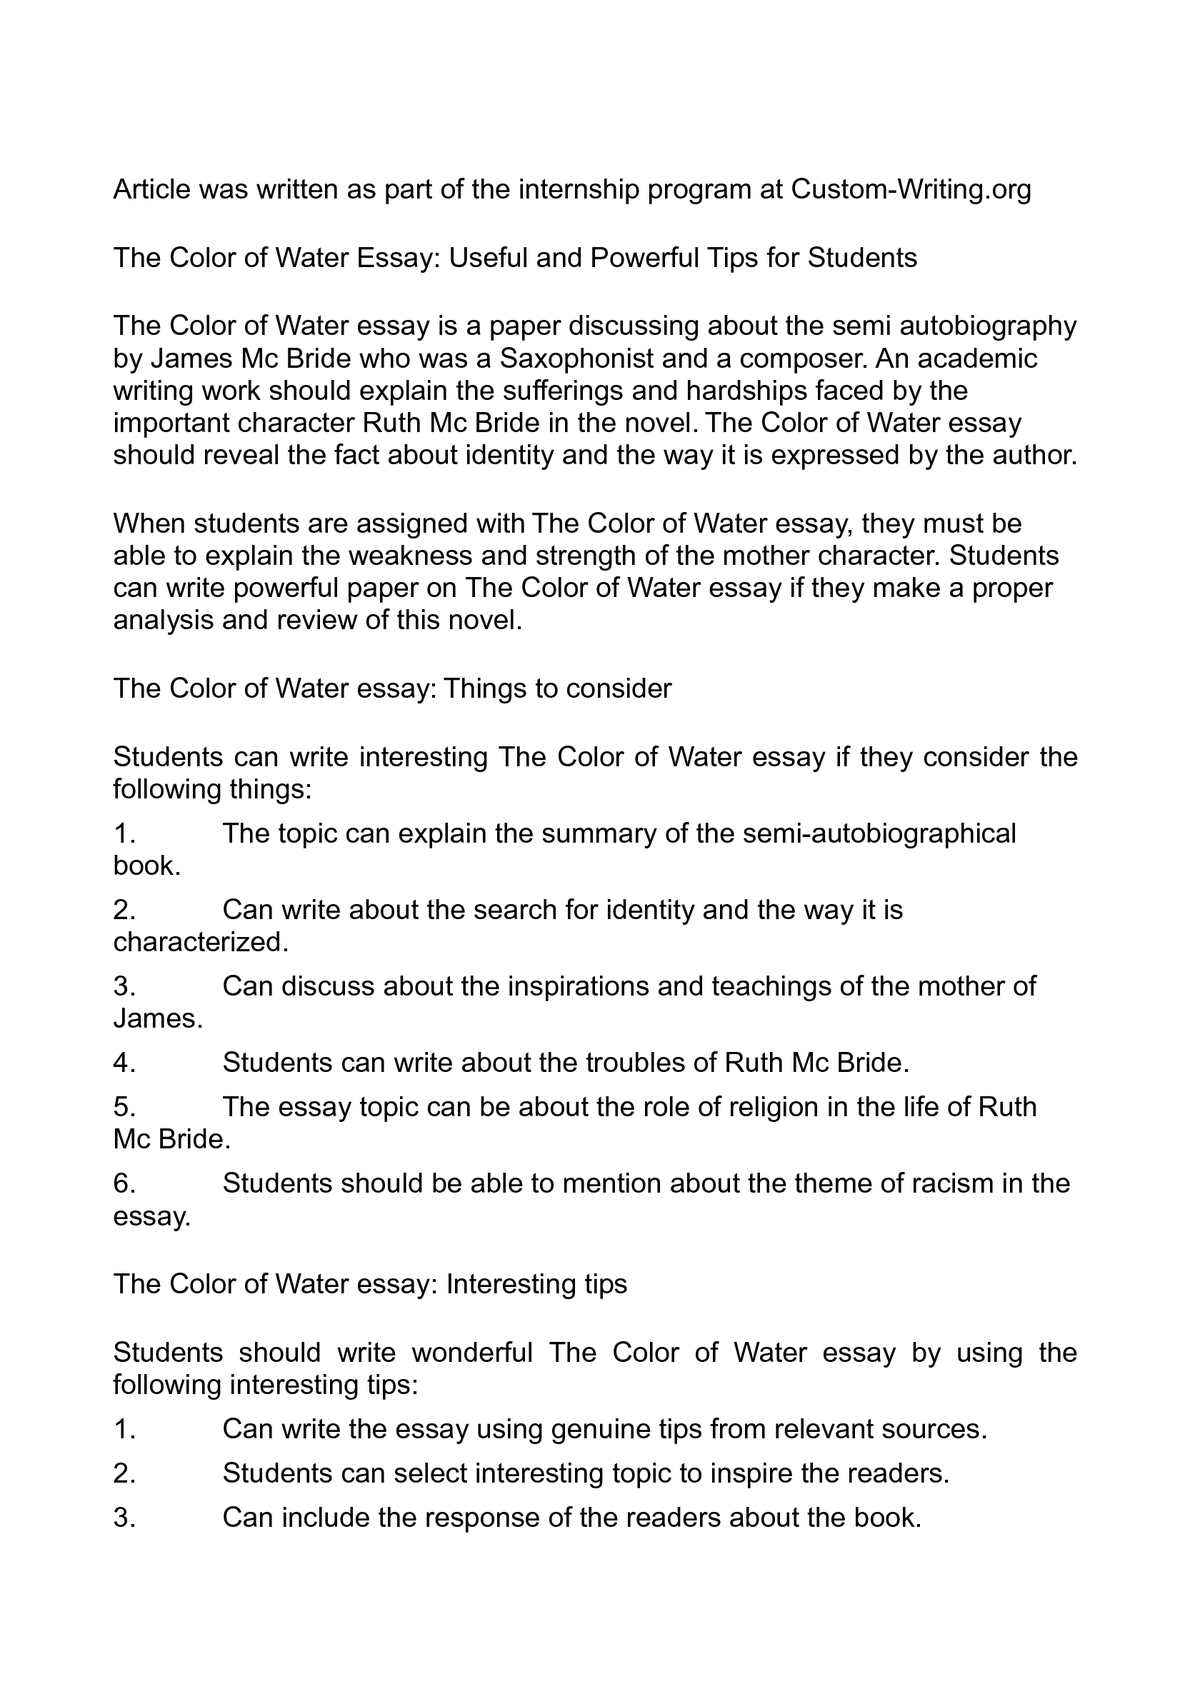 High School Essay Format Calamo  The Color Of Water Essay Useful And Powerful Tips For Students My Country Sri Lanka Essay English also Essay On Health And Fitness Calamo  The Color Of Water Essay Useful And Powerful Tips For  High School Essays